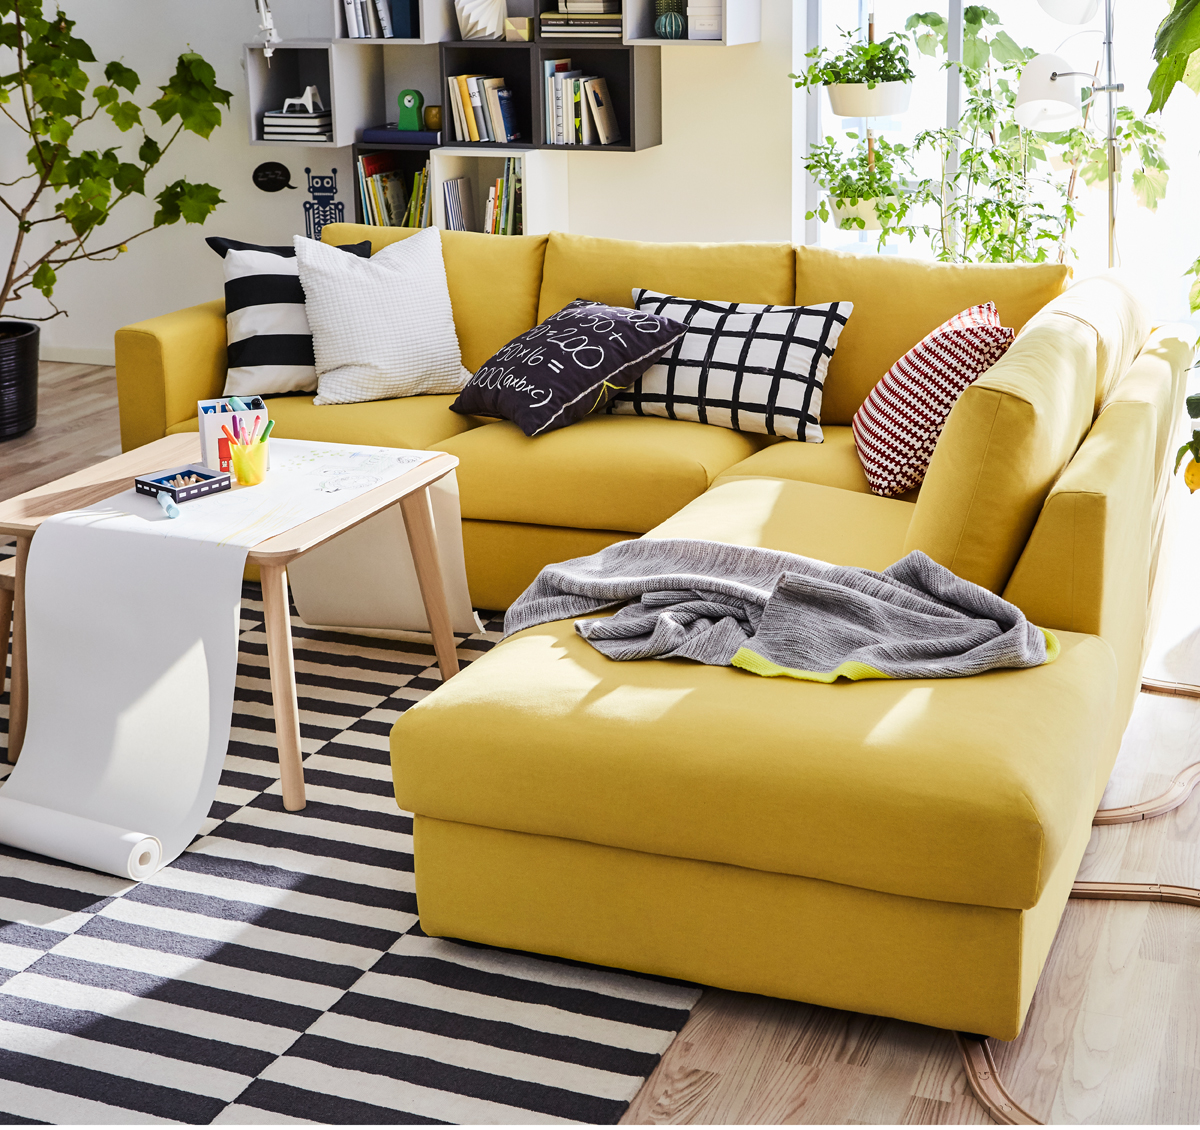 Yellow Sofa Ikea Knopparp Ikea 2 Seater Yellow Couch With Removable Cover From TheSofa